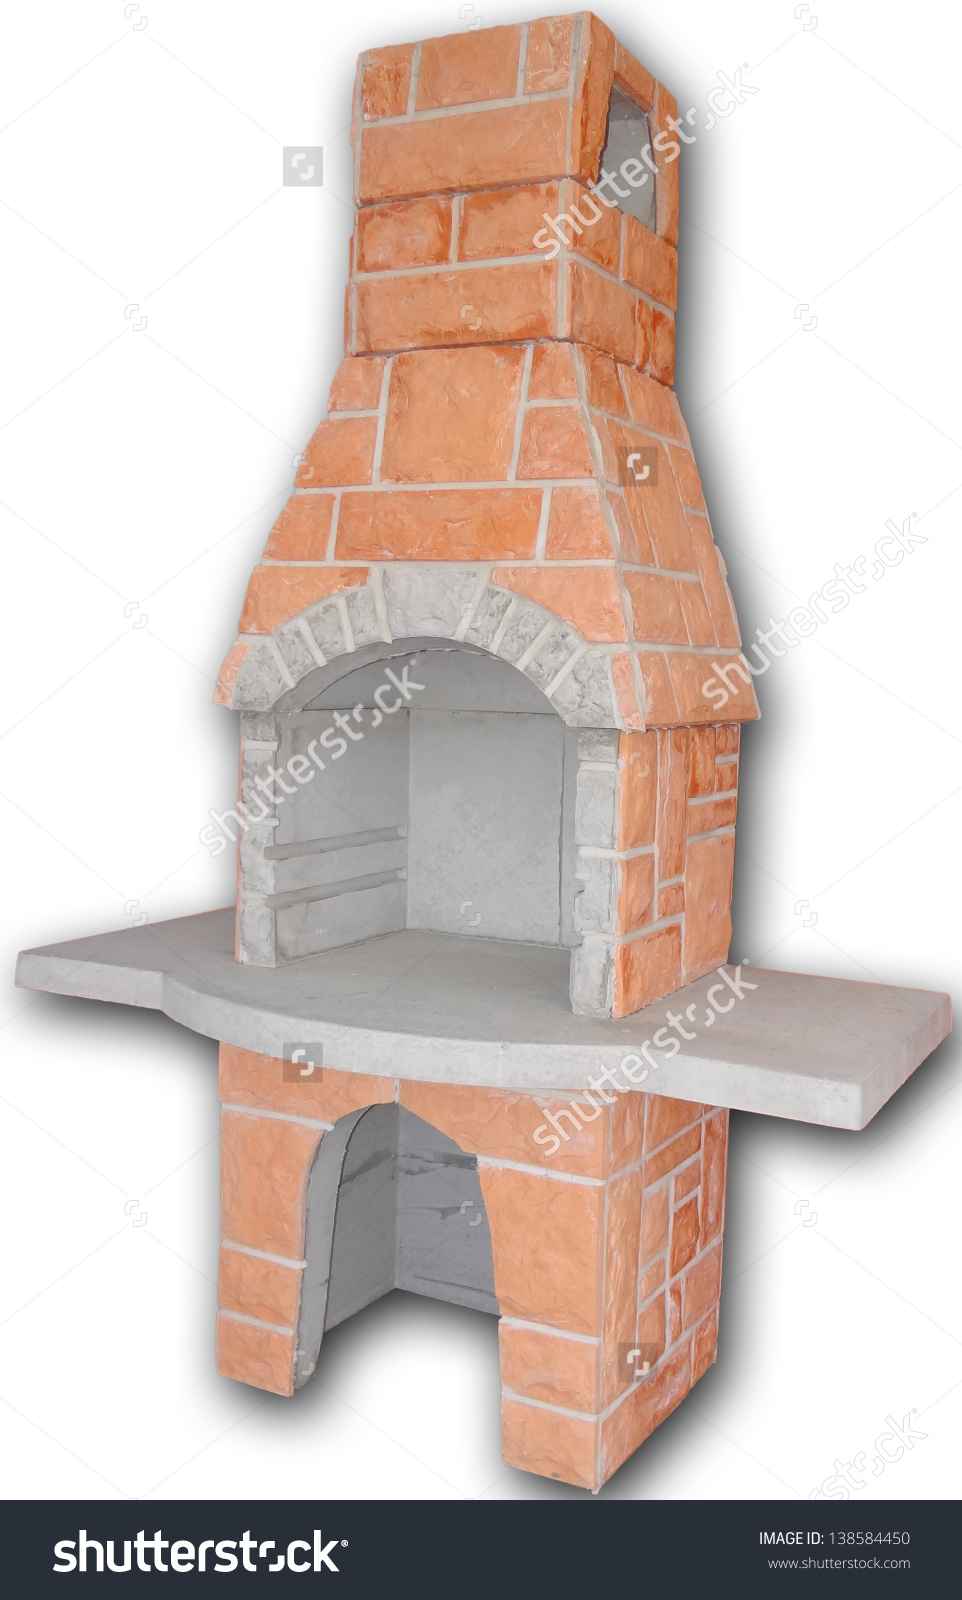 Outdoor Fireplace / Barbecue Grill Made From Bricks And Cement.